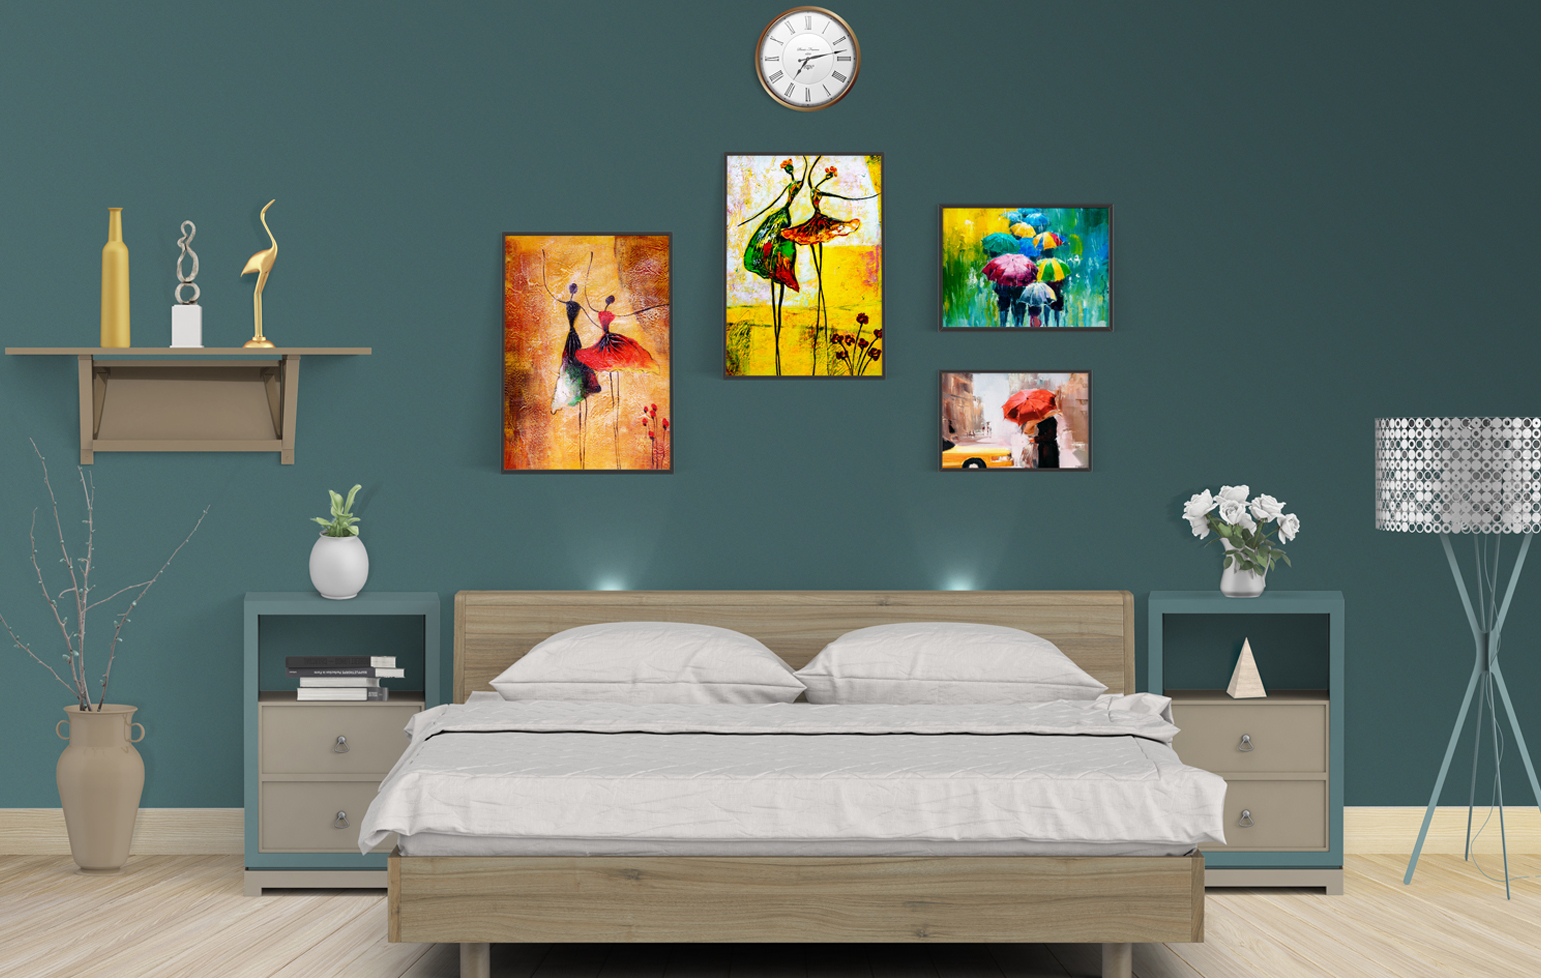 Hang Pictures, paintings and clocks using KLAPiT